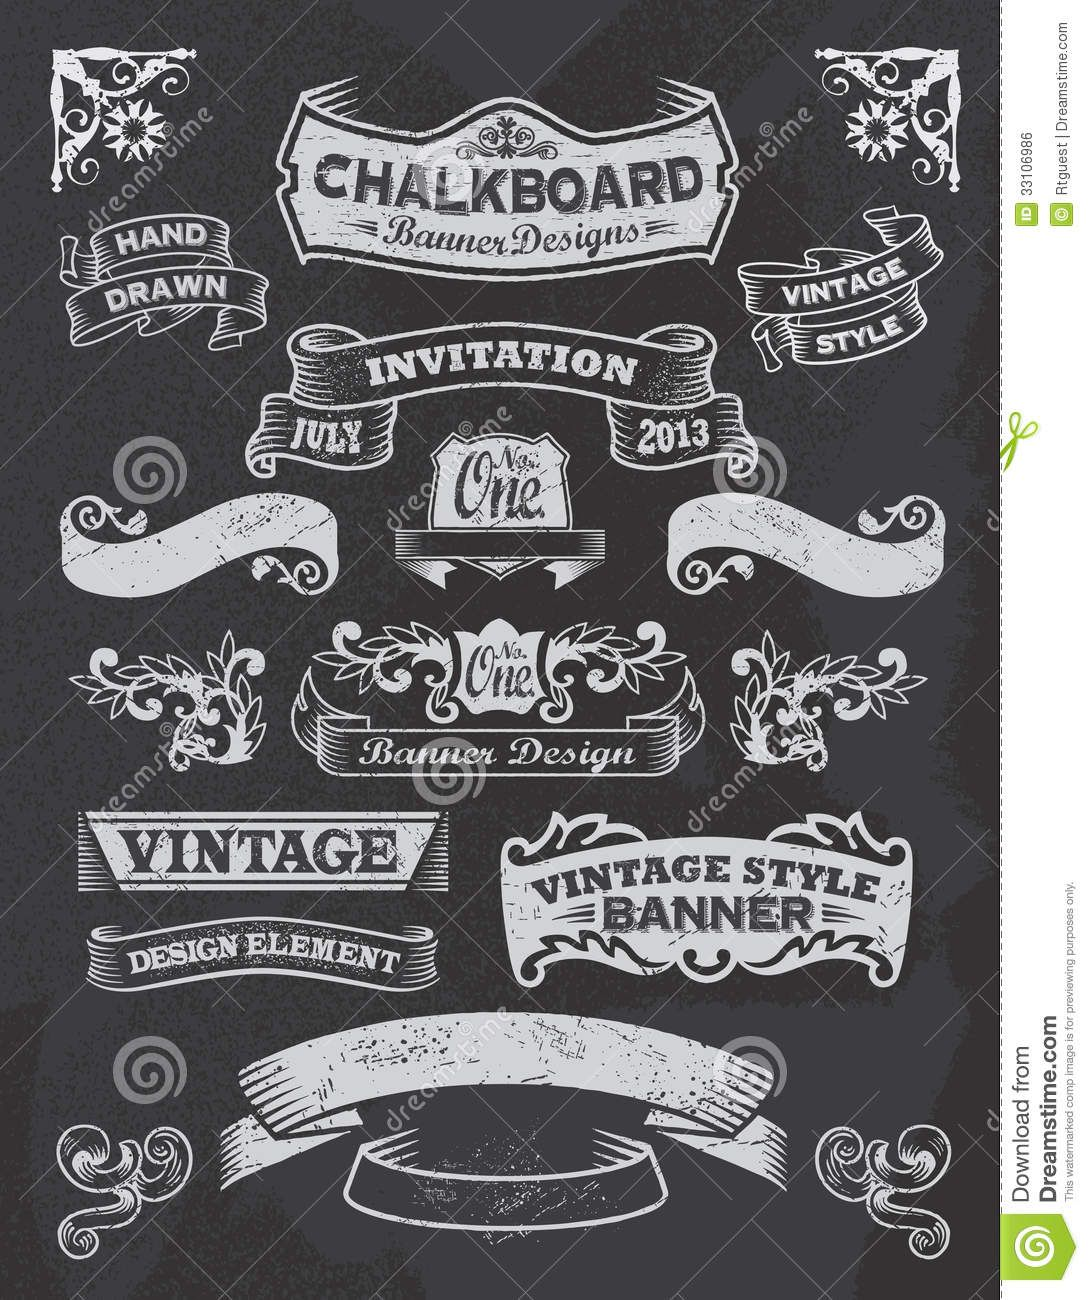 Chalkboard Designs Ideas color monday chalkboard transformationstruly engaging wedding Stock Vector Of Chalkboard Design Elements Frames And Banners Vector Art By Rtguest From The Collection Istock Get Affordable Vector Art At Thinkstock